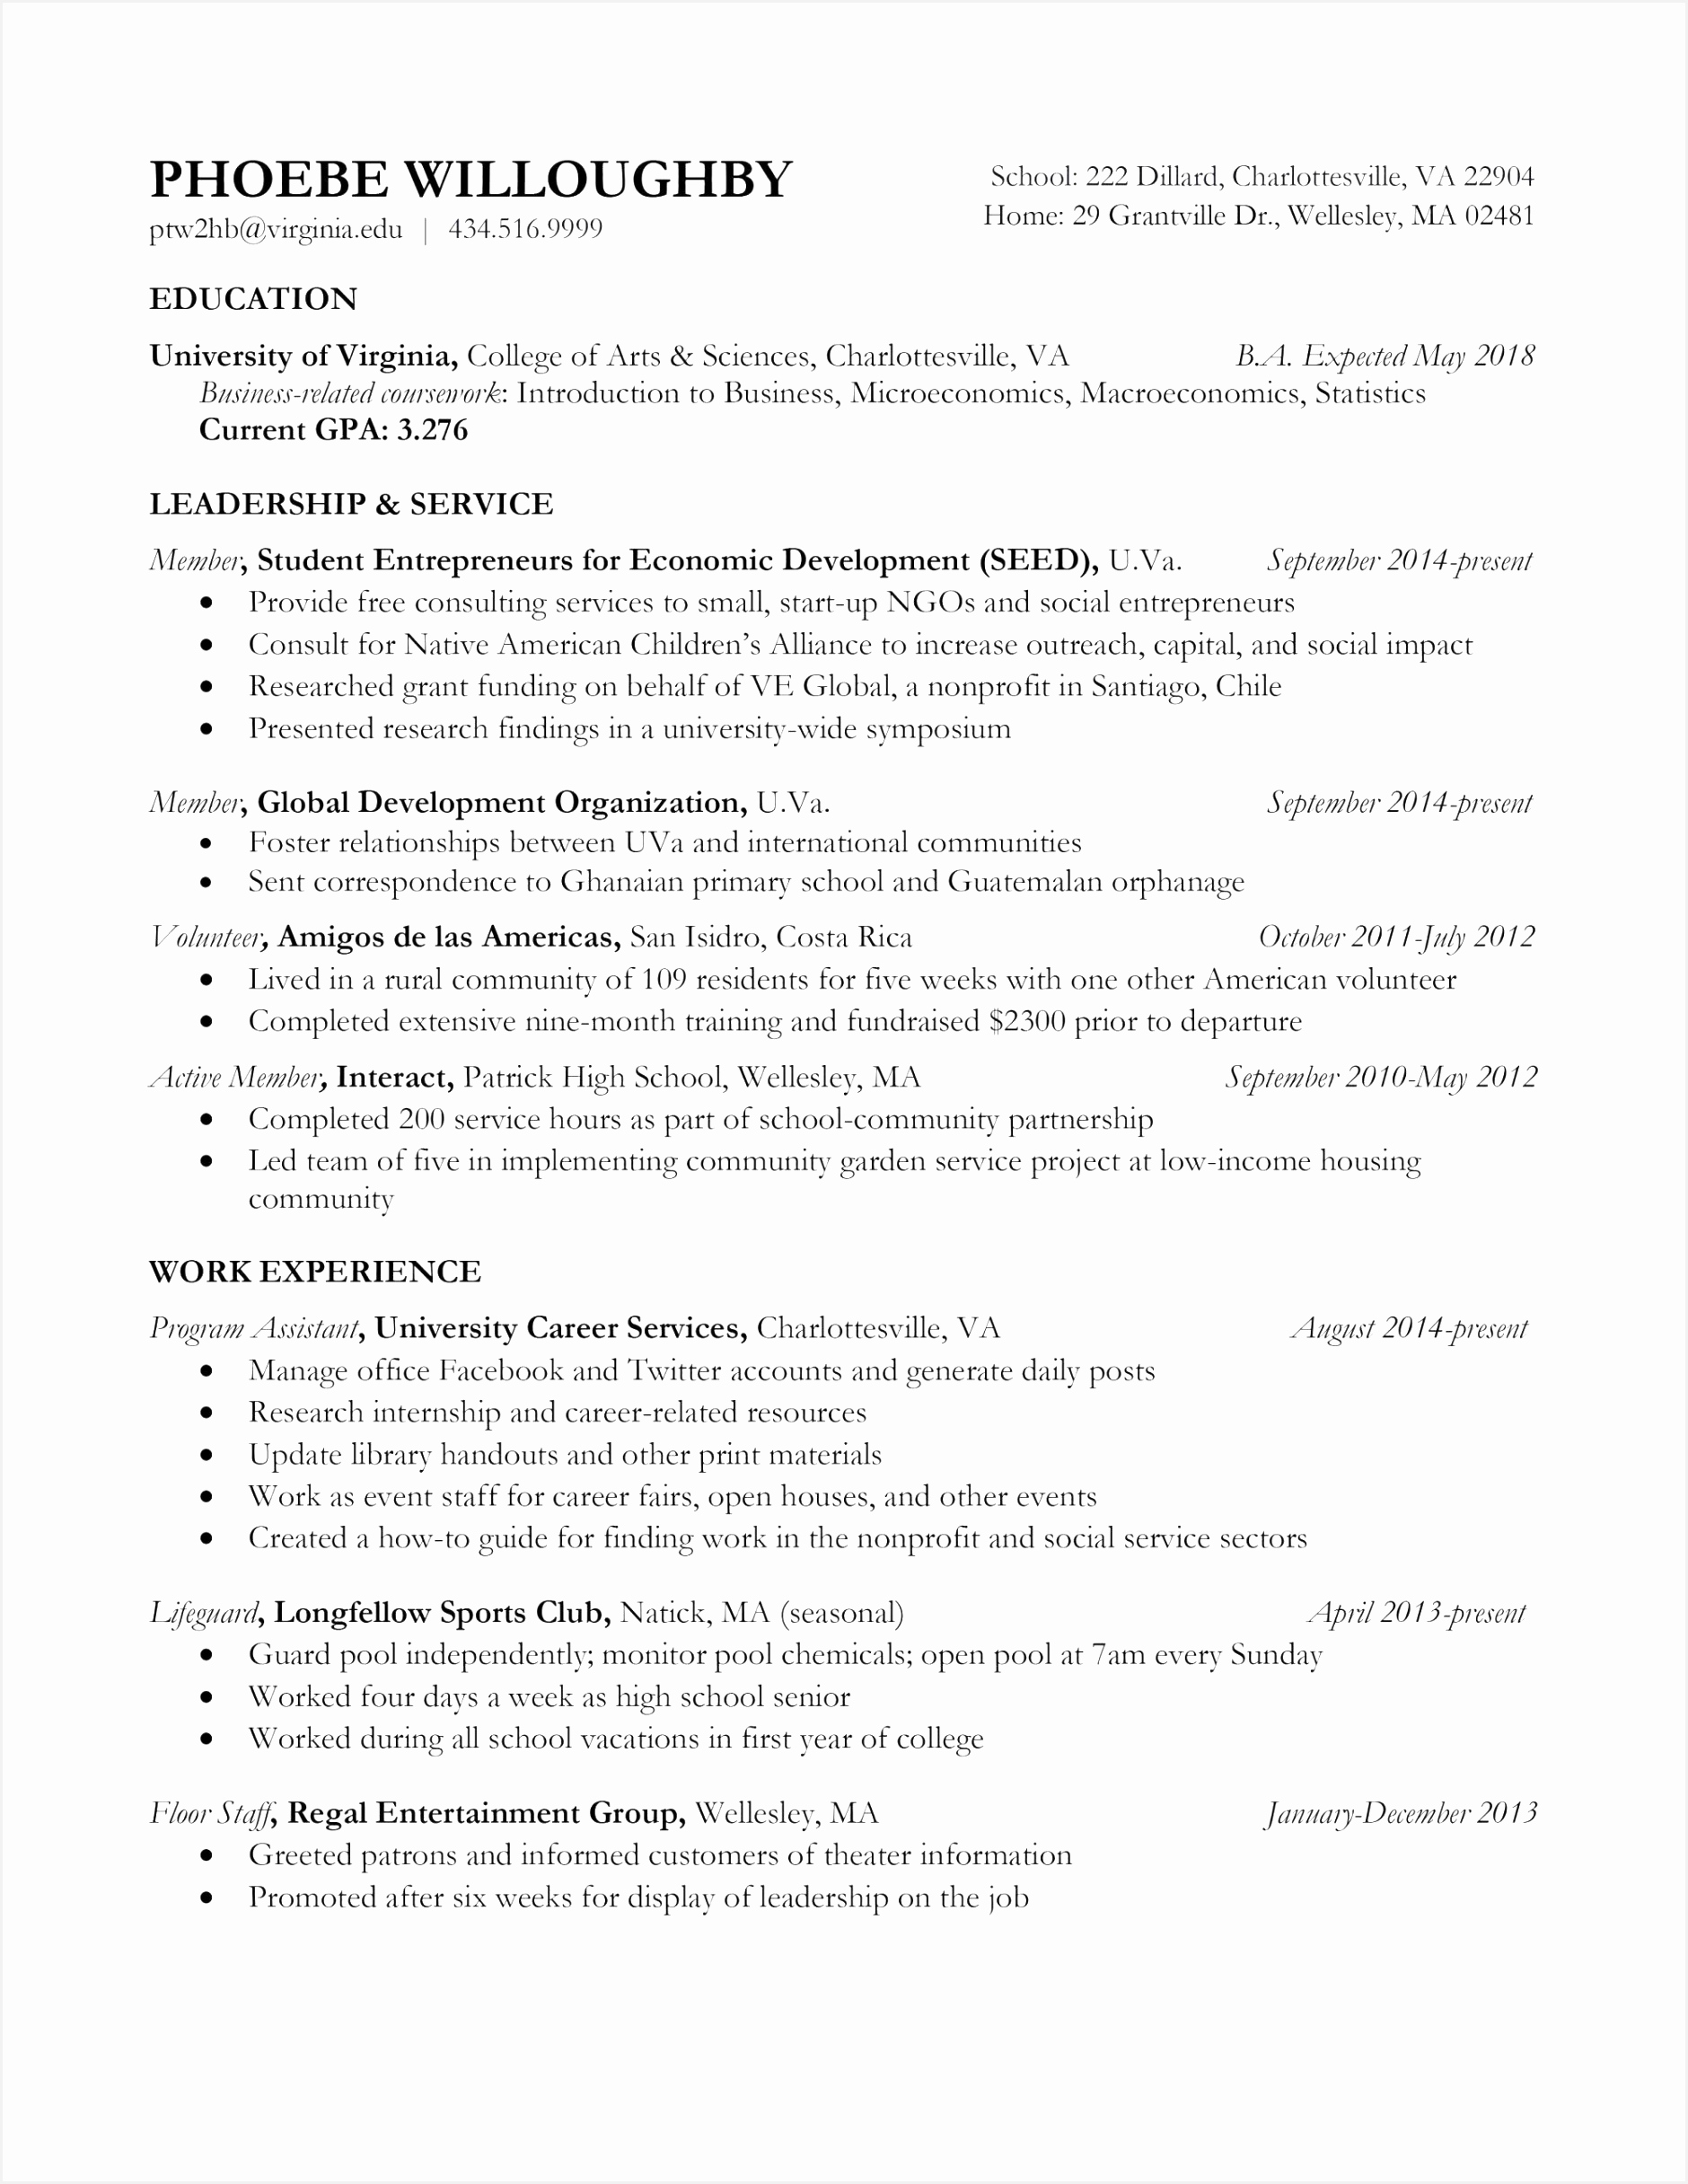 Resume Samples for University Students Bwciz Elegant 25 Free College Resume Examples for Highschool Seniors Of 7 Resume Samples for University Students